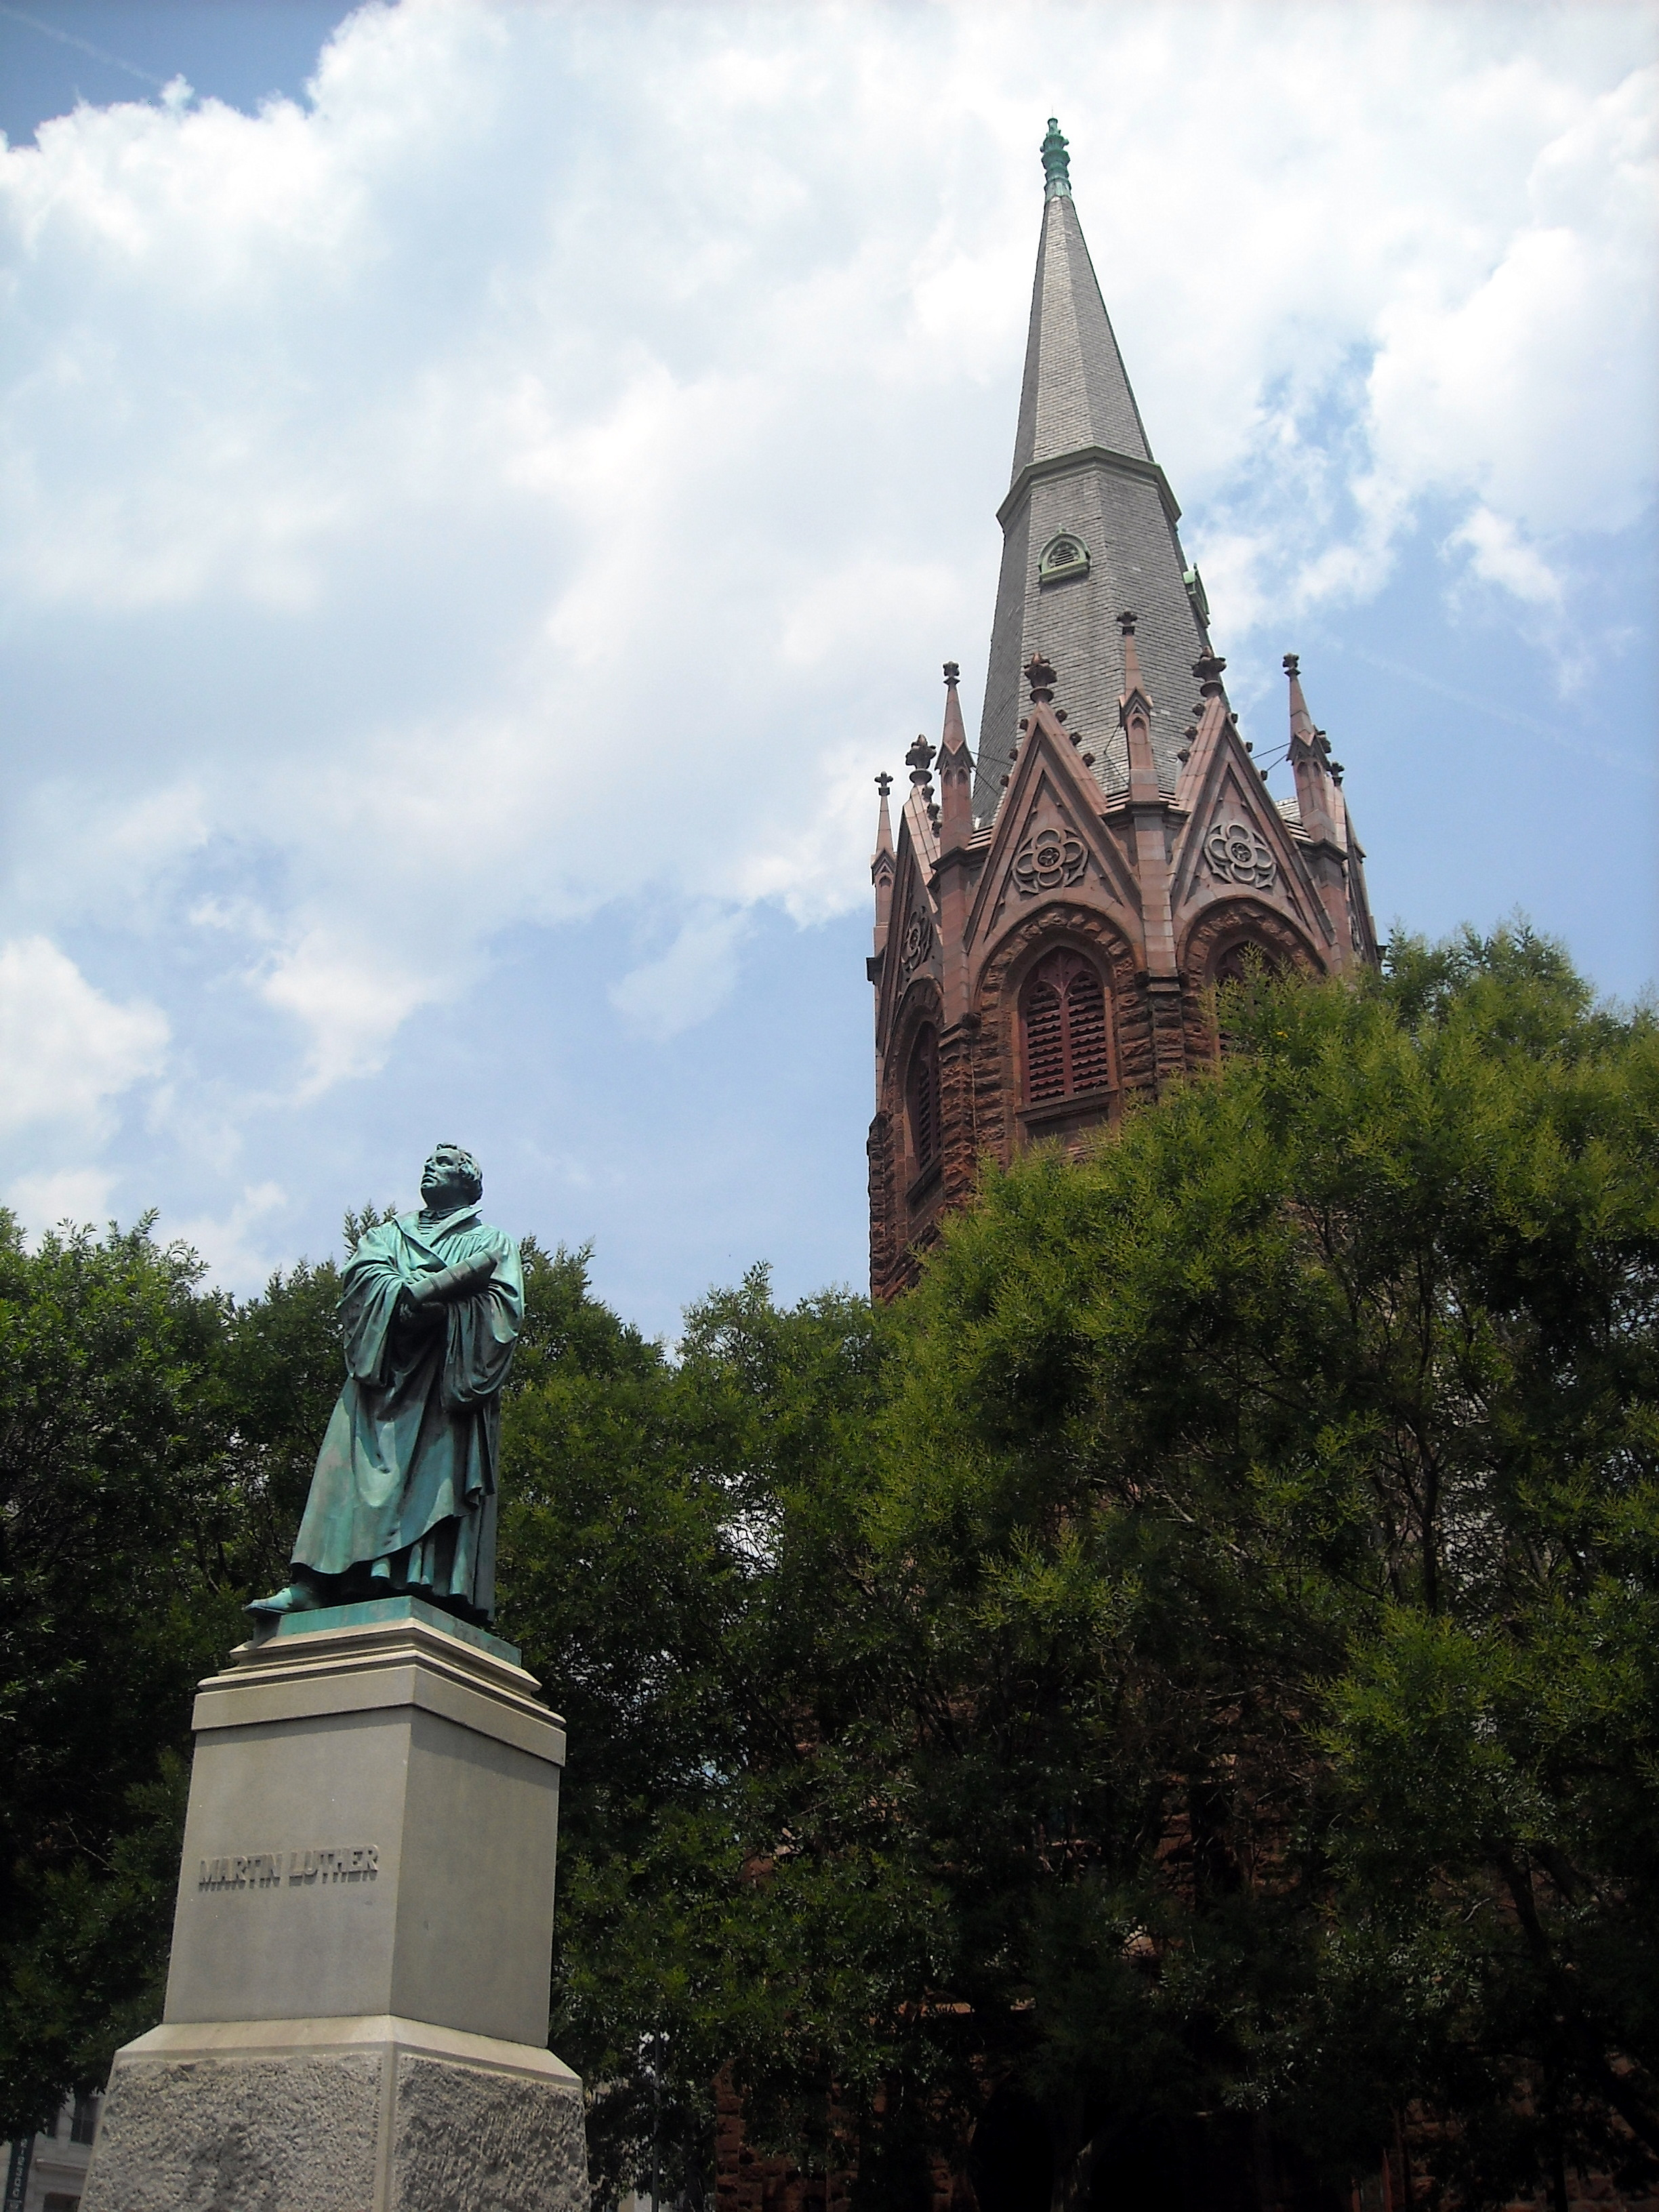 Luther Place Memorial Church and Martin Luther Statue by AgnosticPreachersKid on Wikimedia Commons (CC BY-SA 3.0)